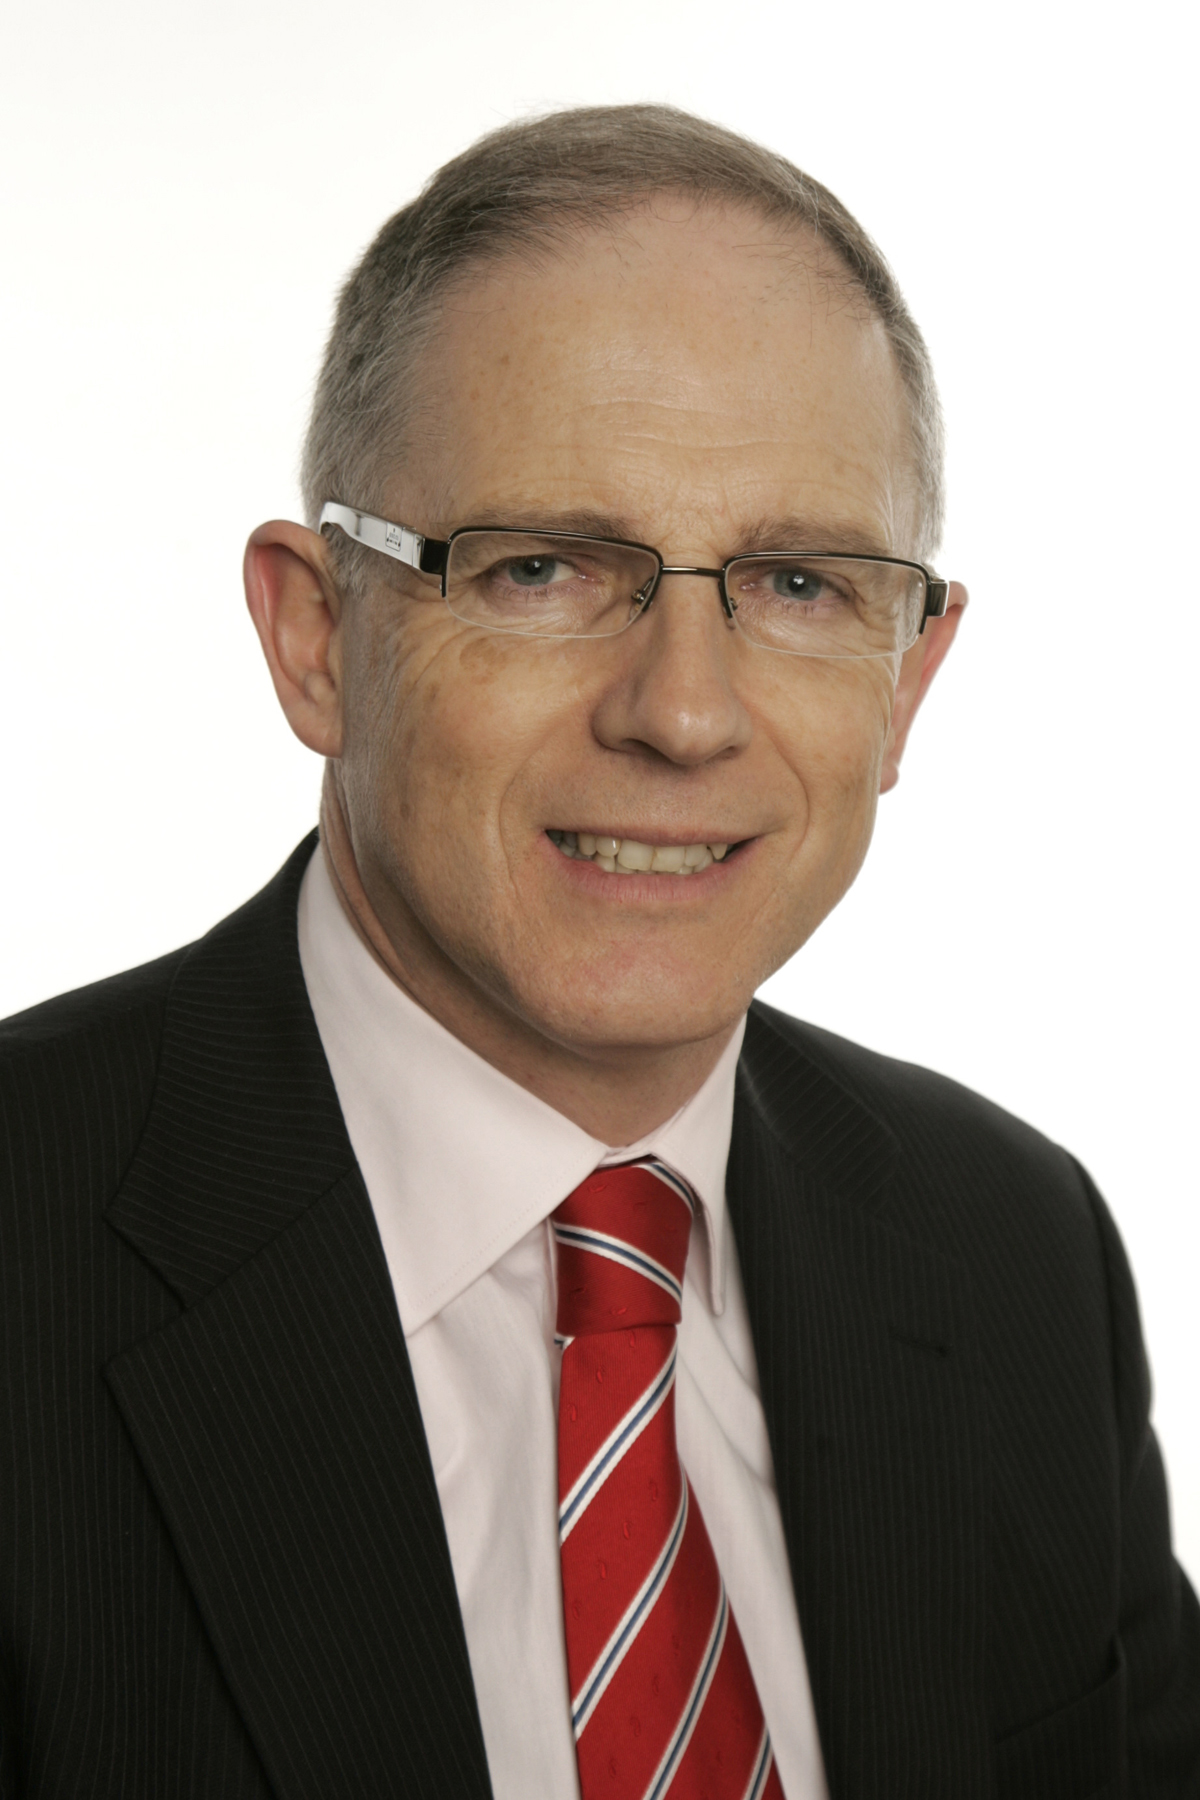 Stanton Pleased with New Fine Gael Small Business Plan